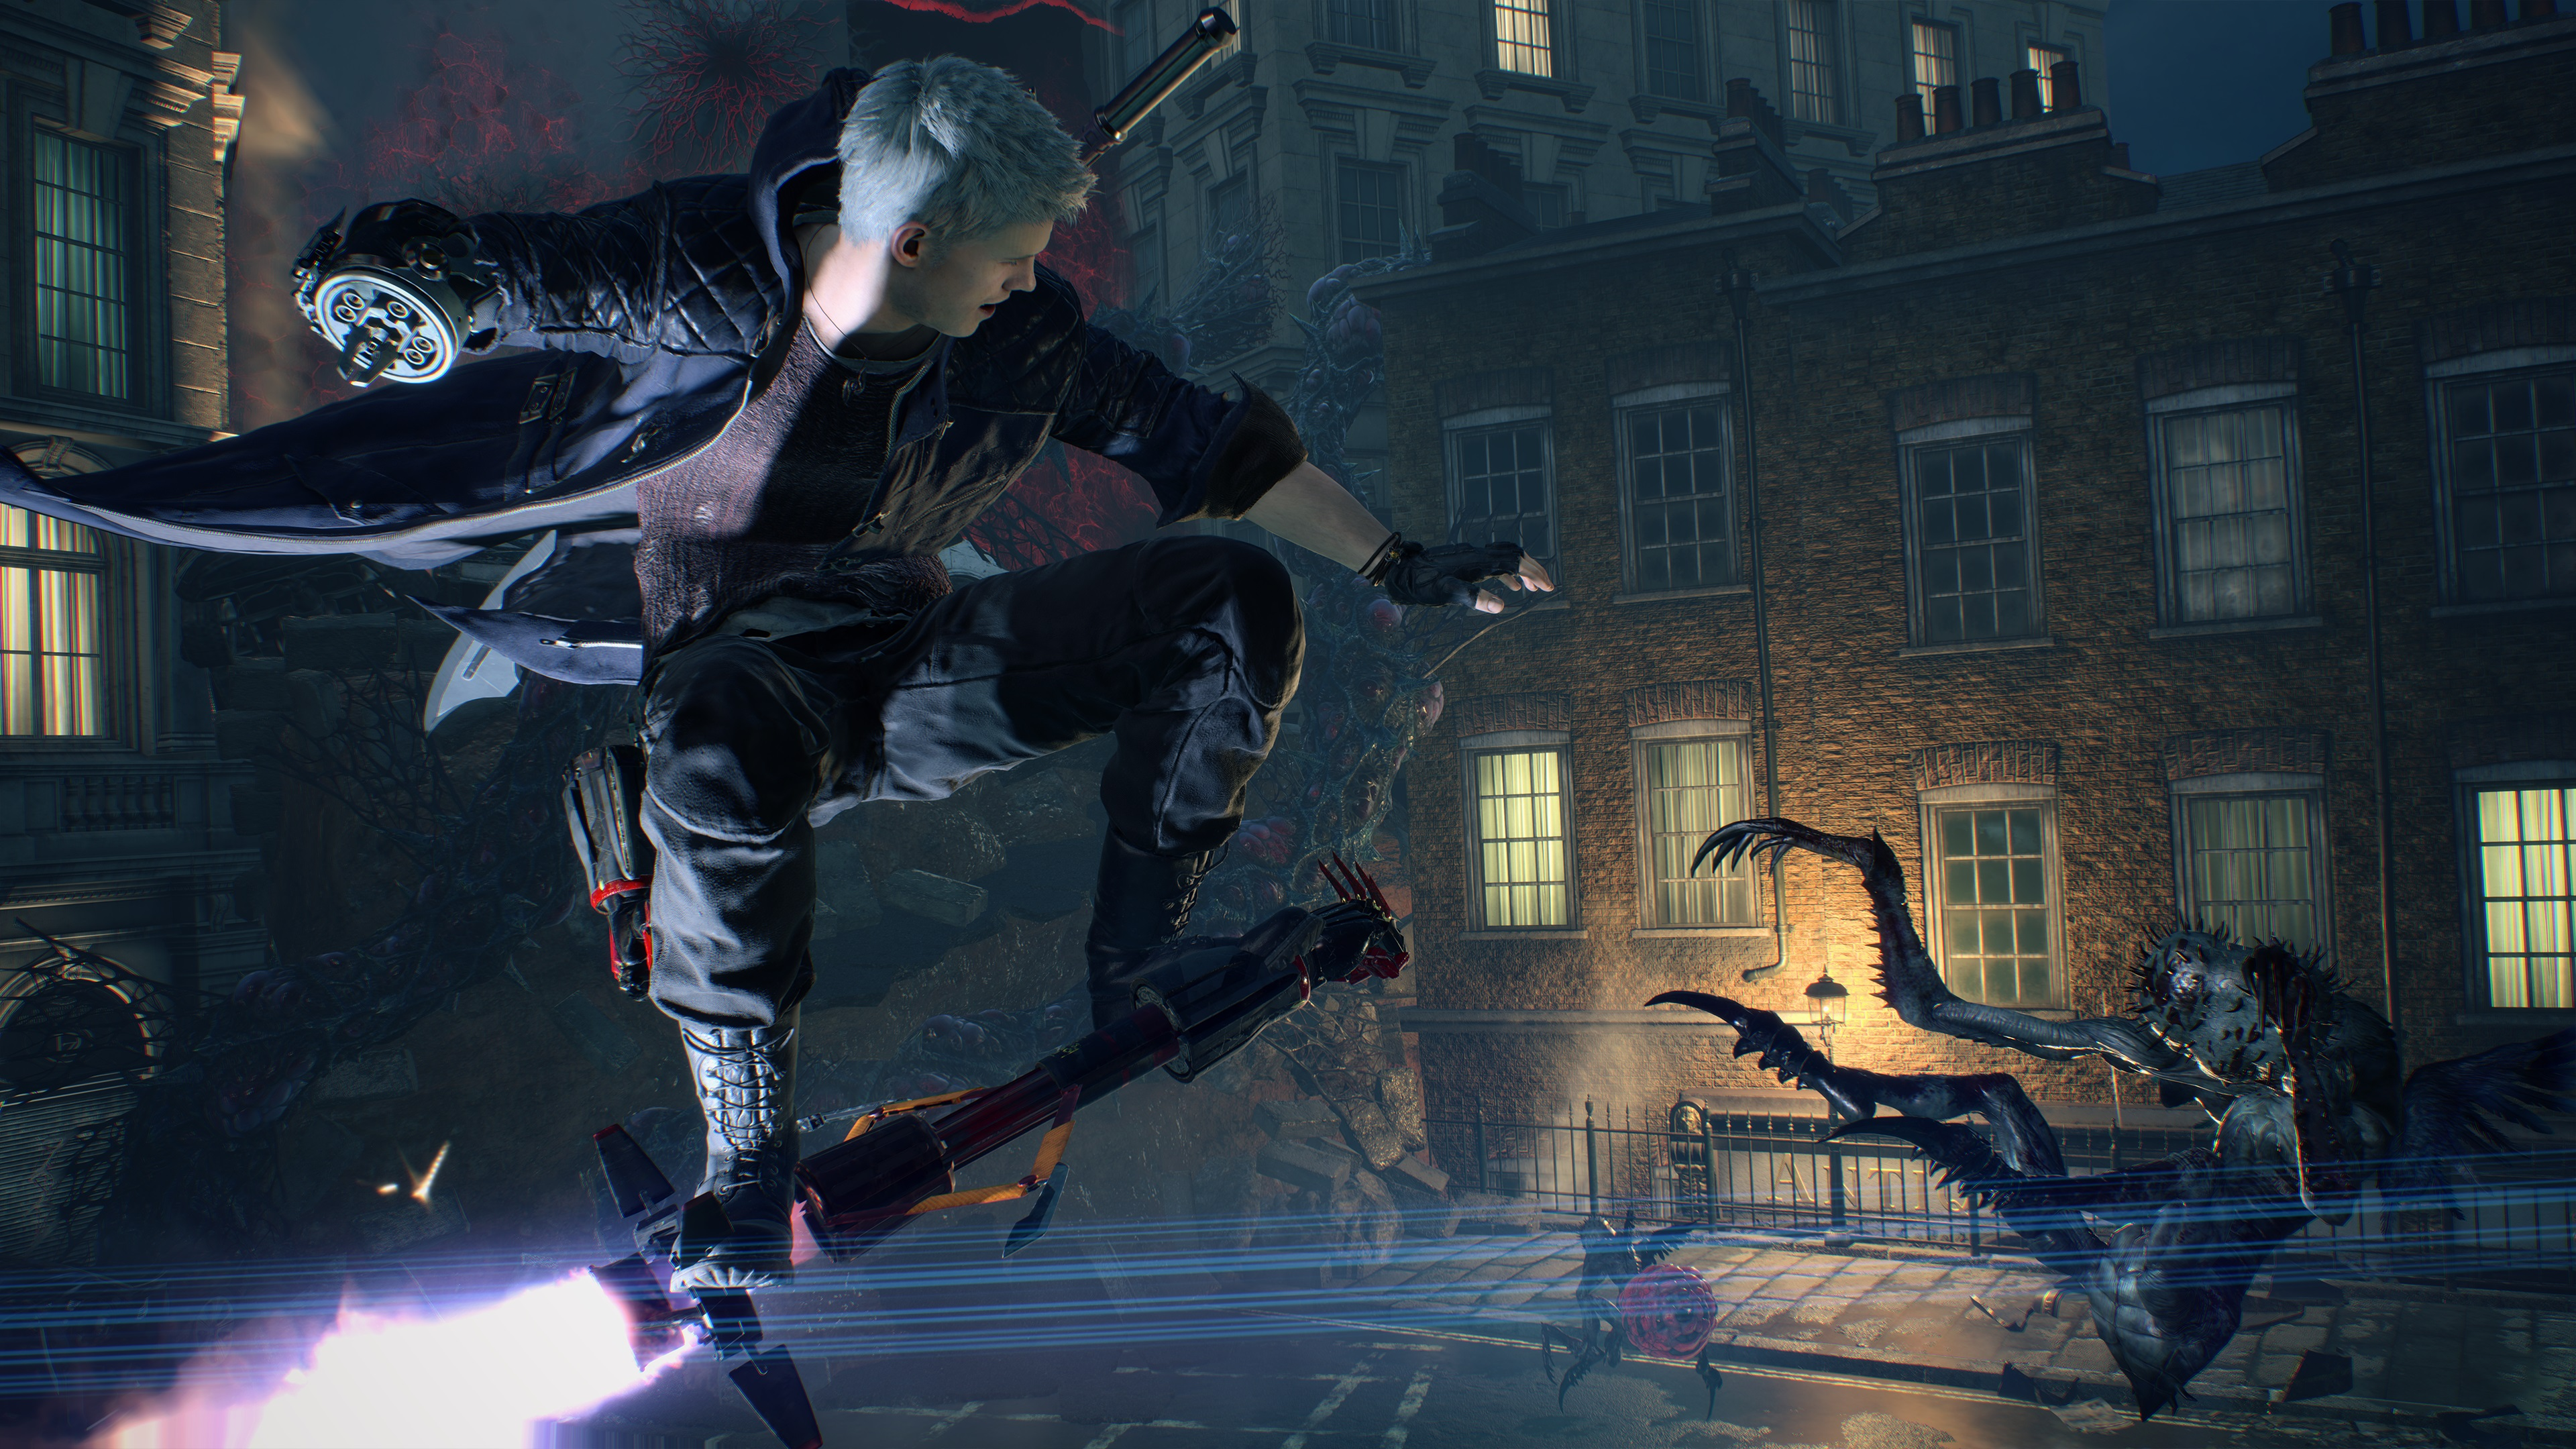 Devil-May-Cry-5-1.jpg - Devil May Cry 5